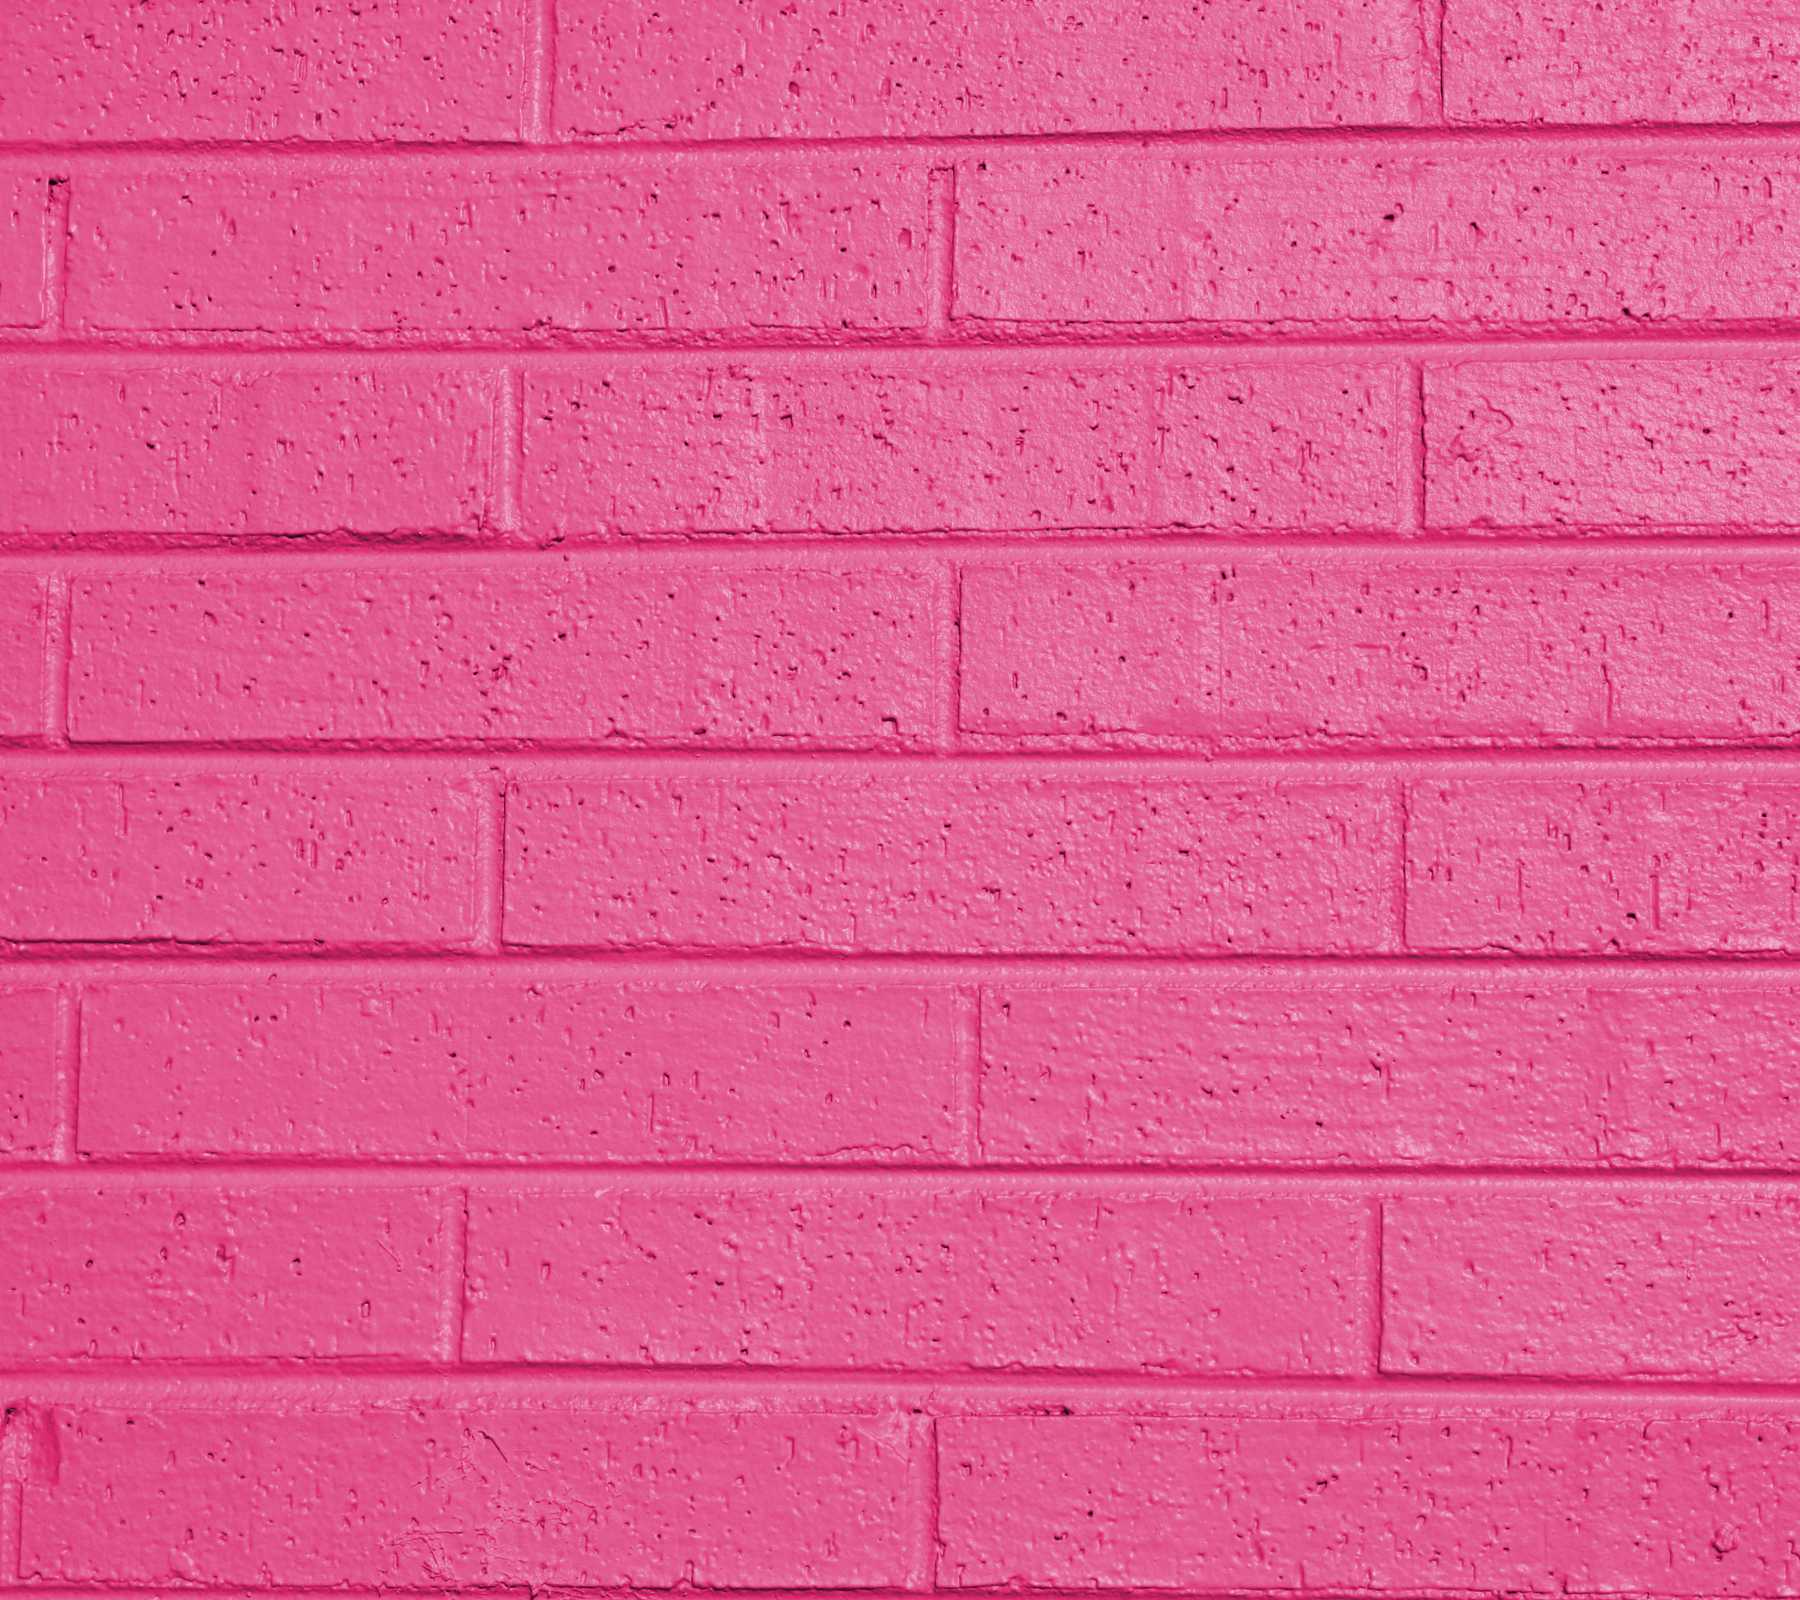 Pink Wallpapers   Top Pink Backgrounds   WallpaperAccess 1800x1600